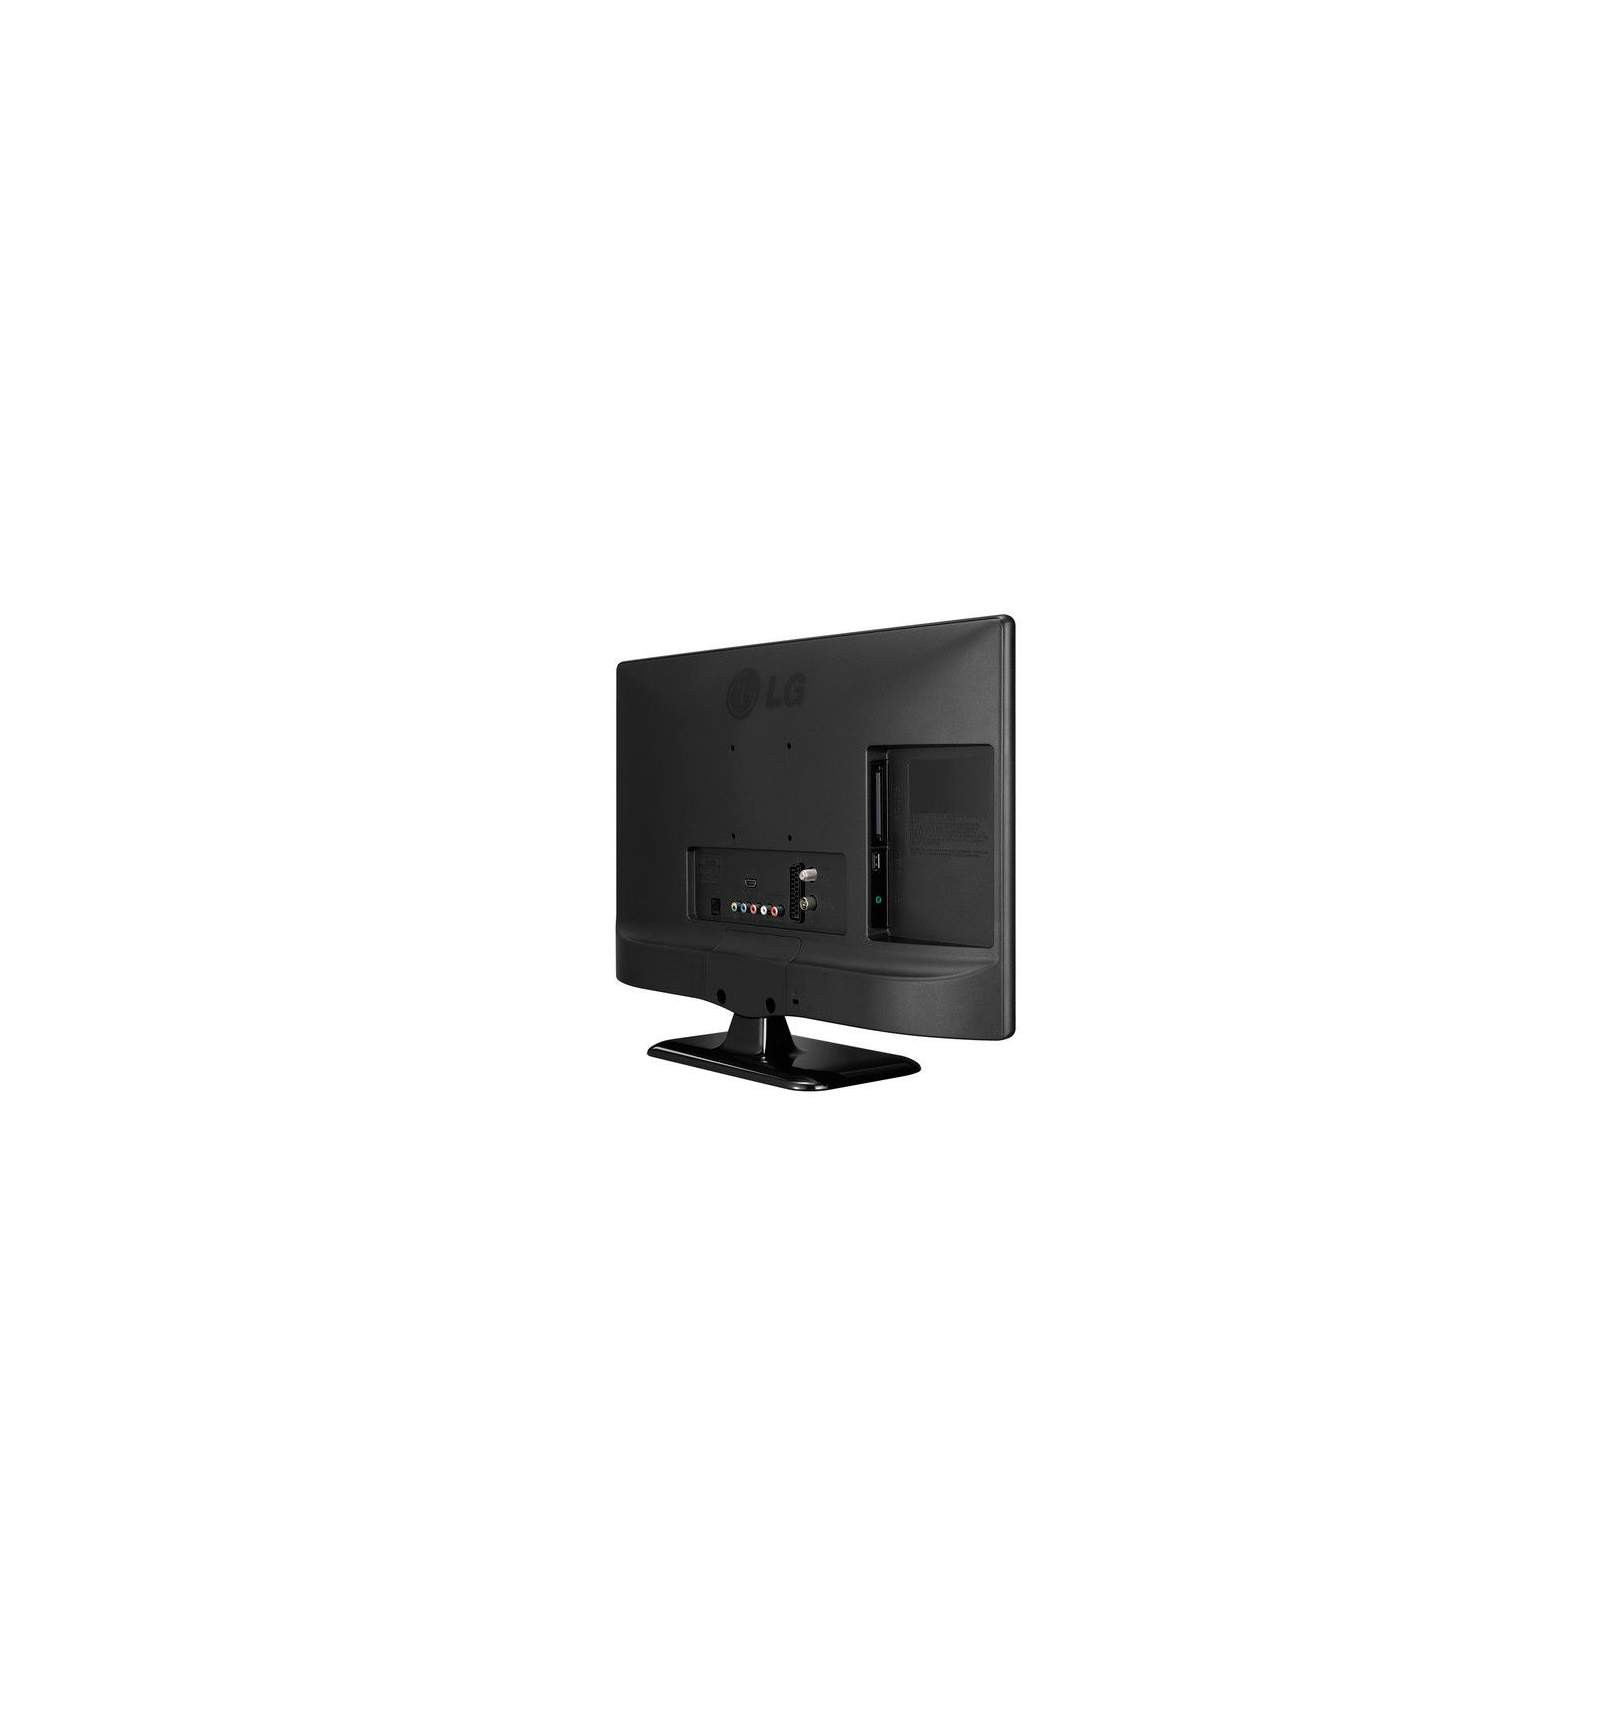 22mt44dp pz televisor monitor full hd led lg